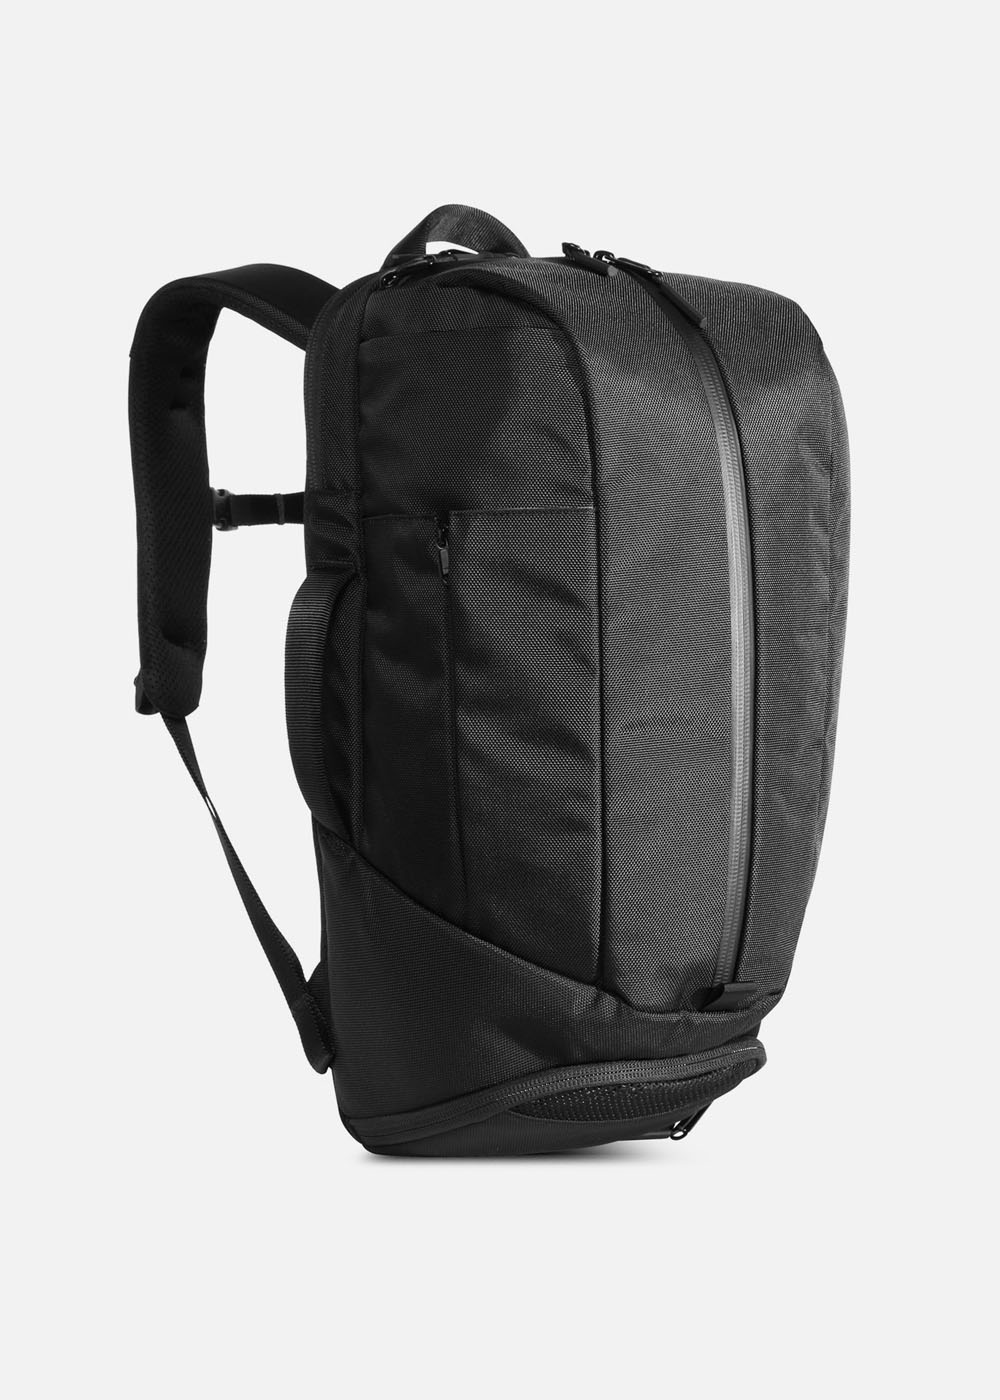 active_aer_duffel_pack_2_black.JPG